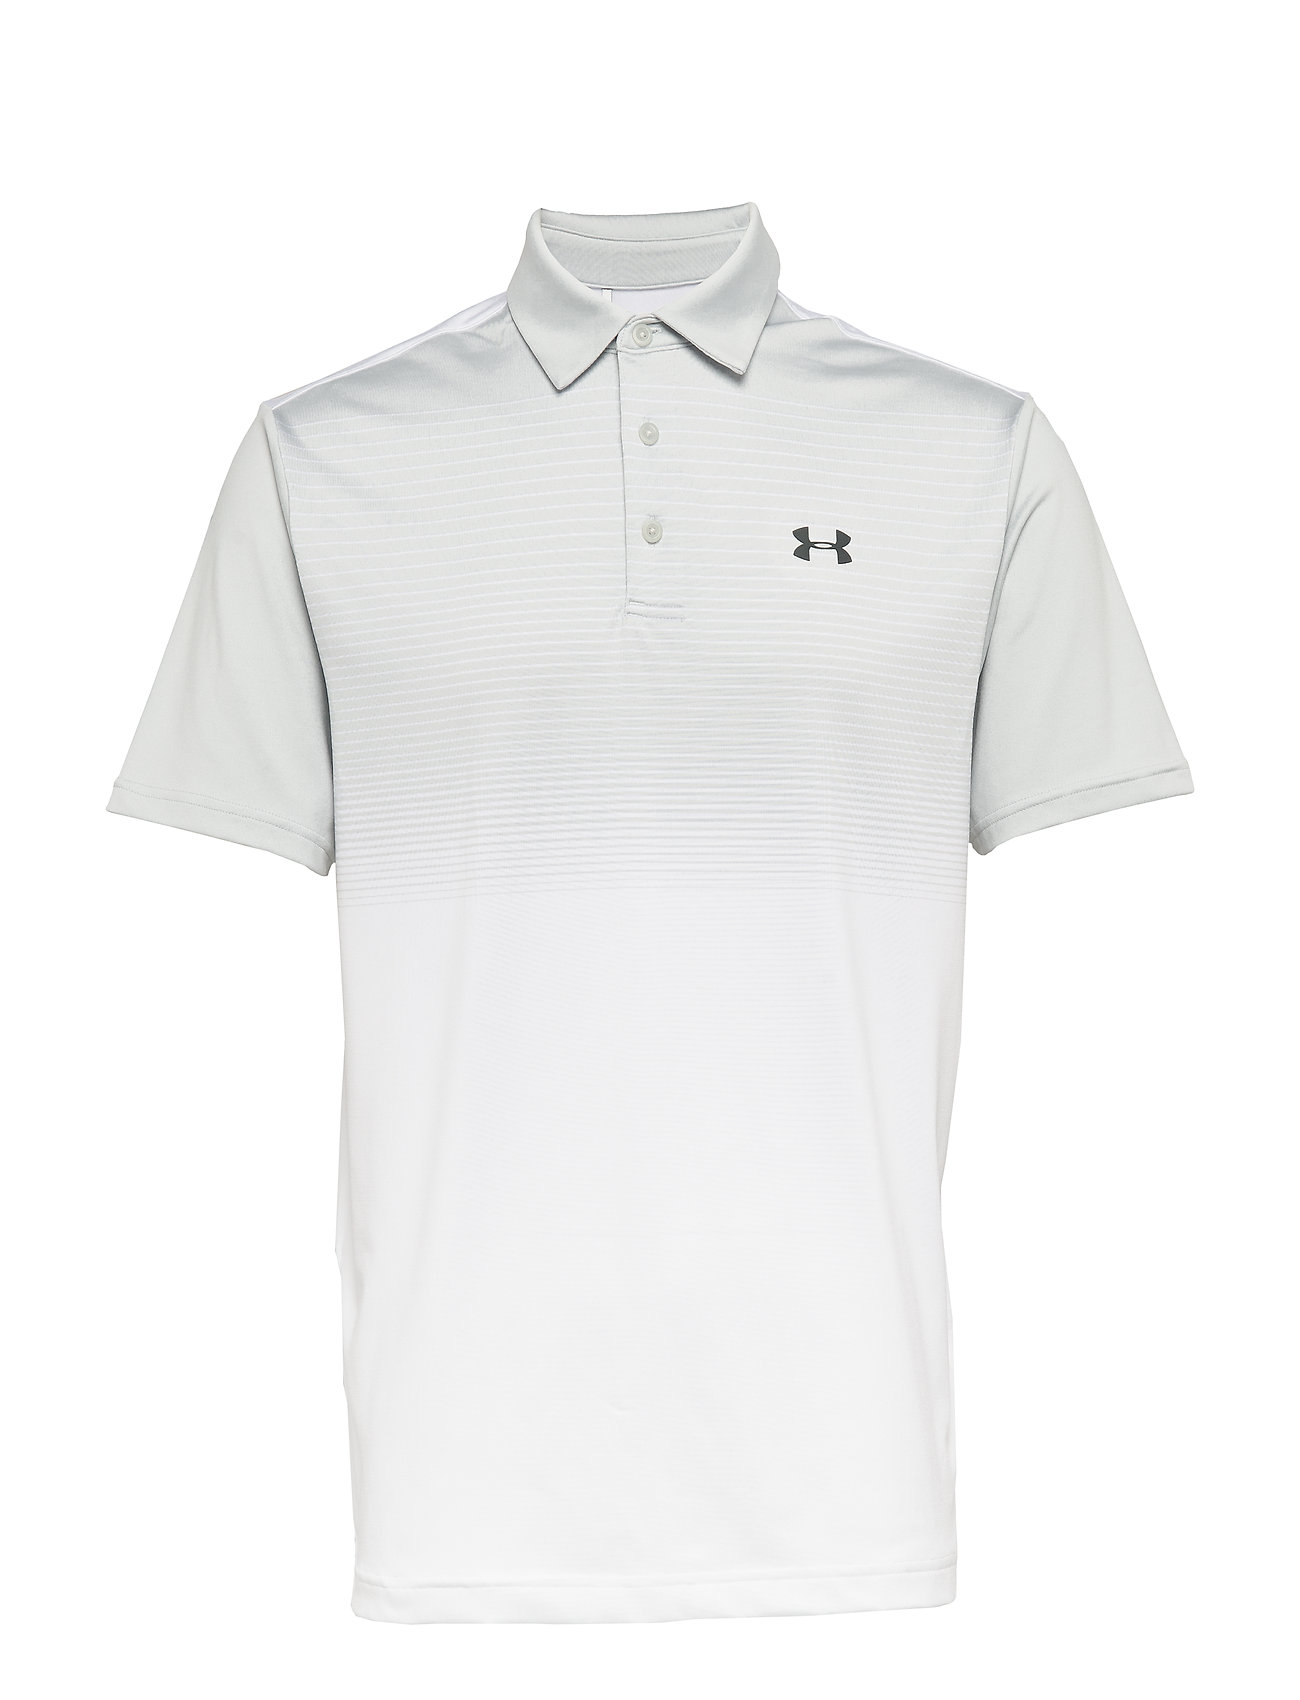 Under Armour Playoff Polo 2.0 - BLACK